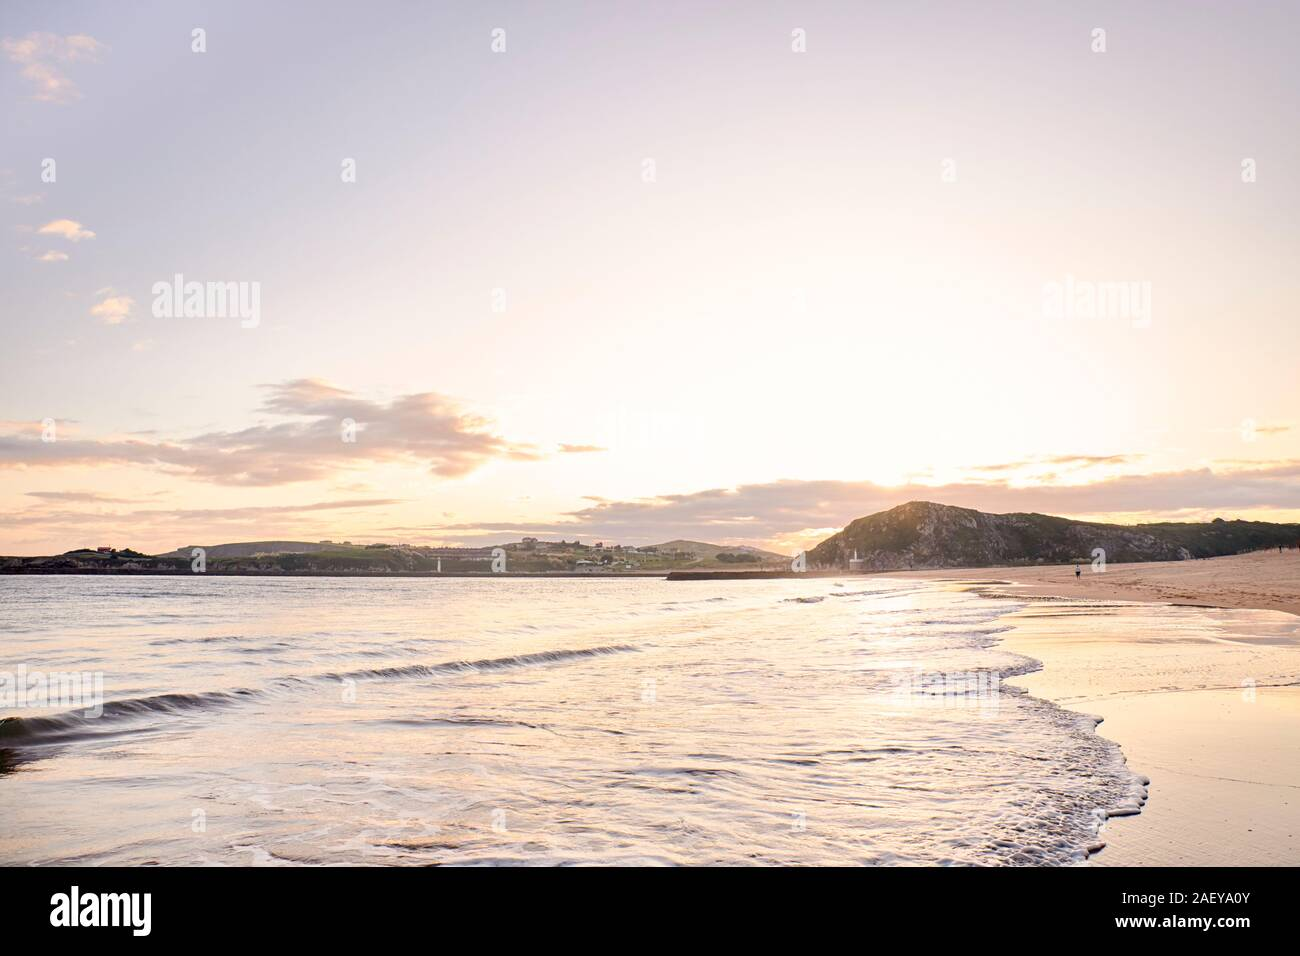 View of a beach at dawn in northern Spain. concept tourism and nature. Stock Photo